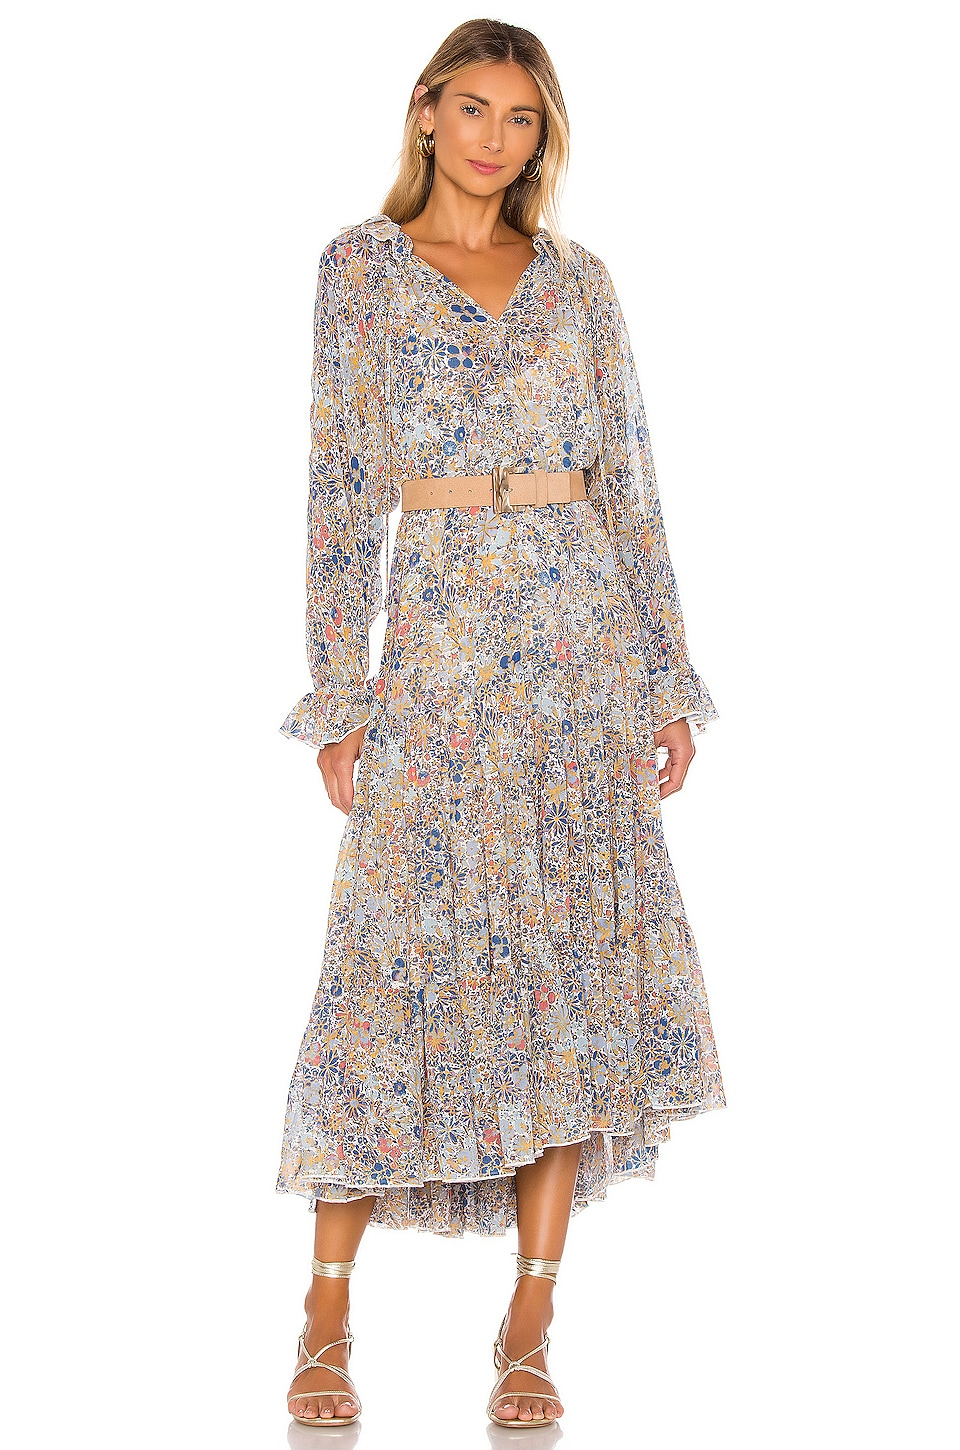 Free People Feeling Groovy Maxi Dress in Ivory Combo